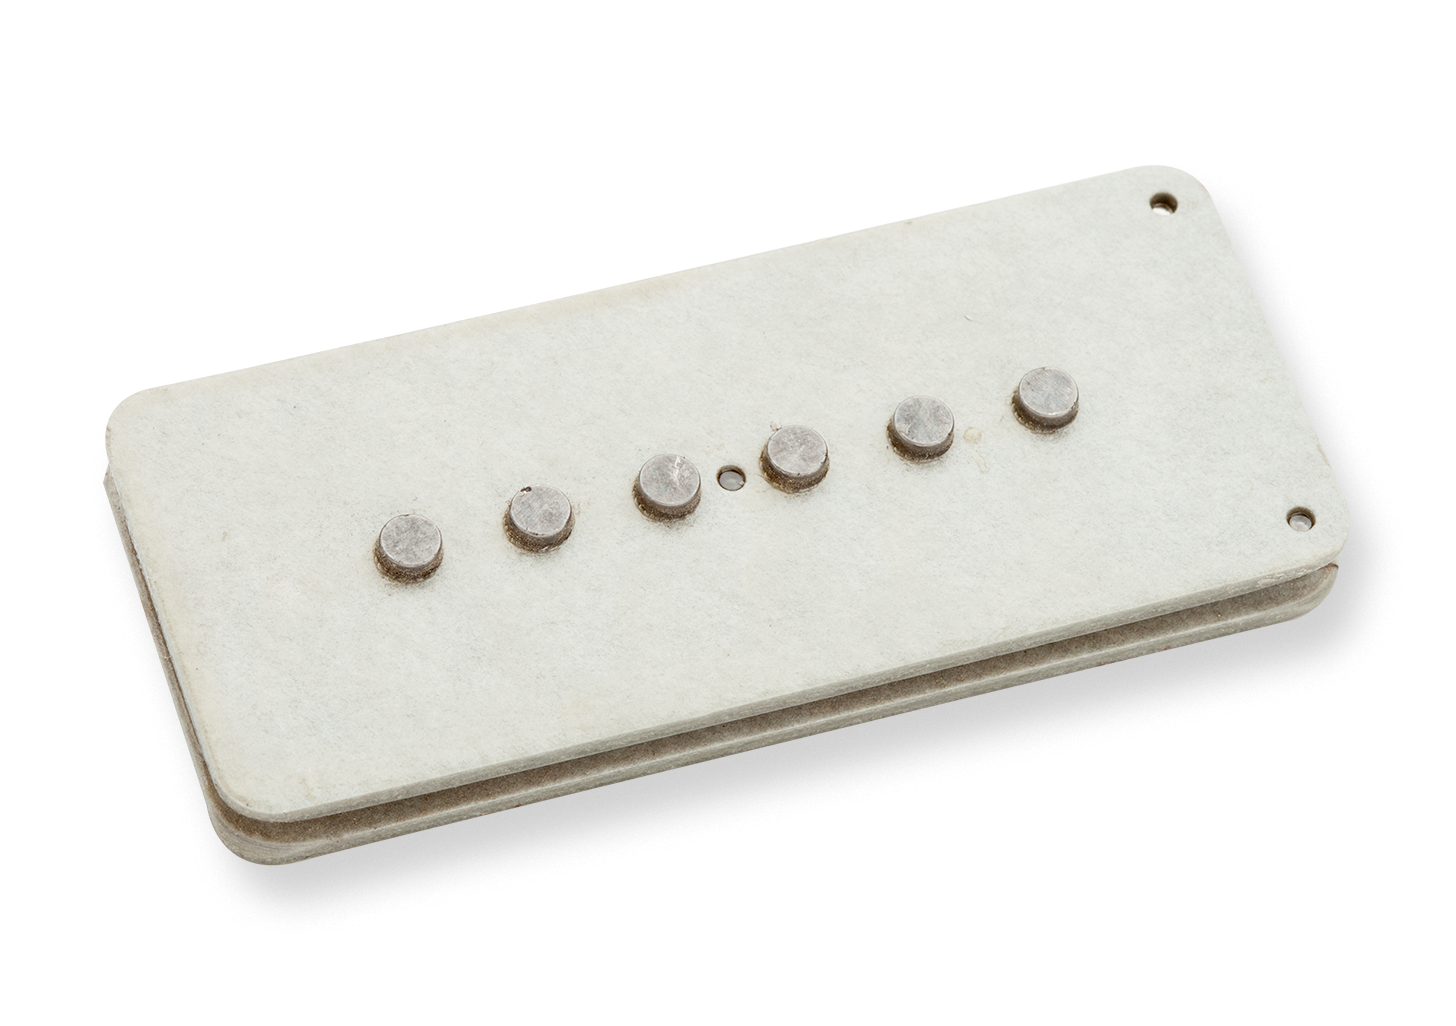 Seymour Duncan Antiquity II Jazzmaster - Bridge